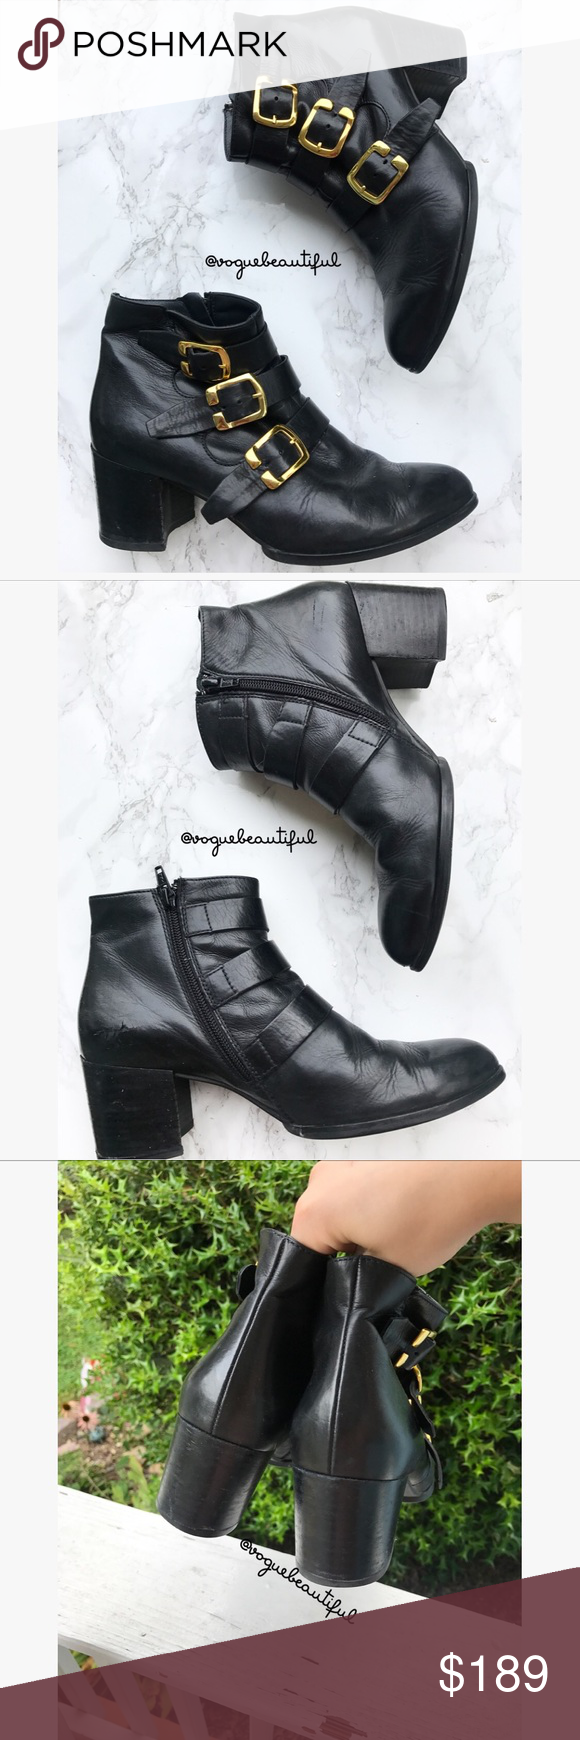 Paul Green Black Leather Buckle Boots and made of